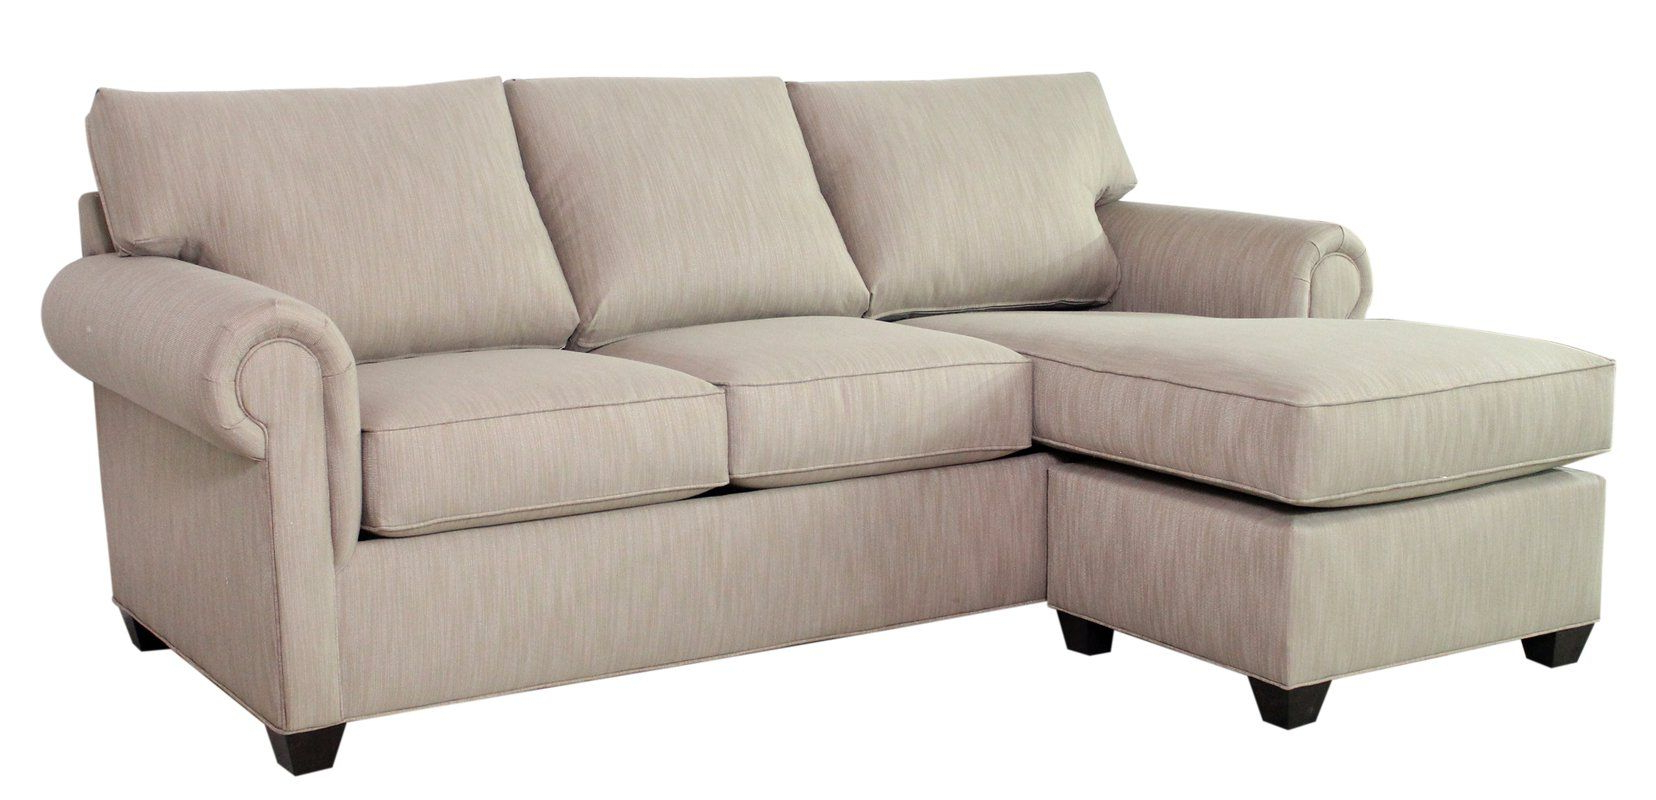 Pinterest Inside Taren Reversible Sofa/chaise Sleeper Sectionals With Storage Ottoman (Gallery 16 of 20)